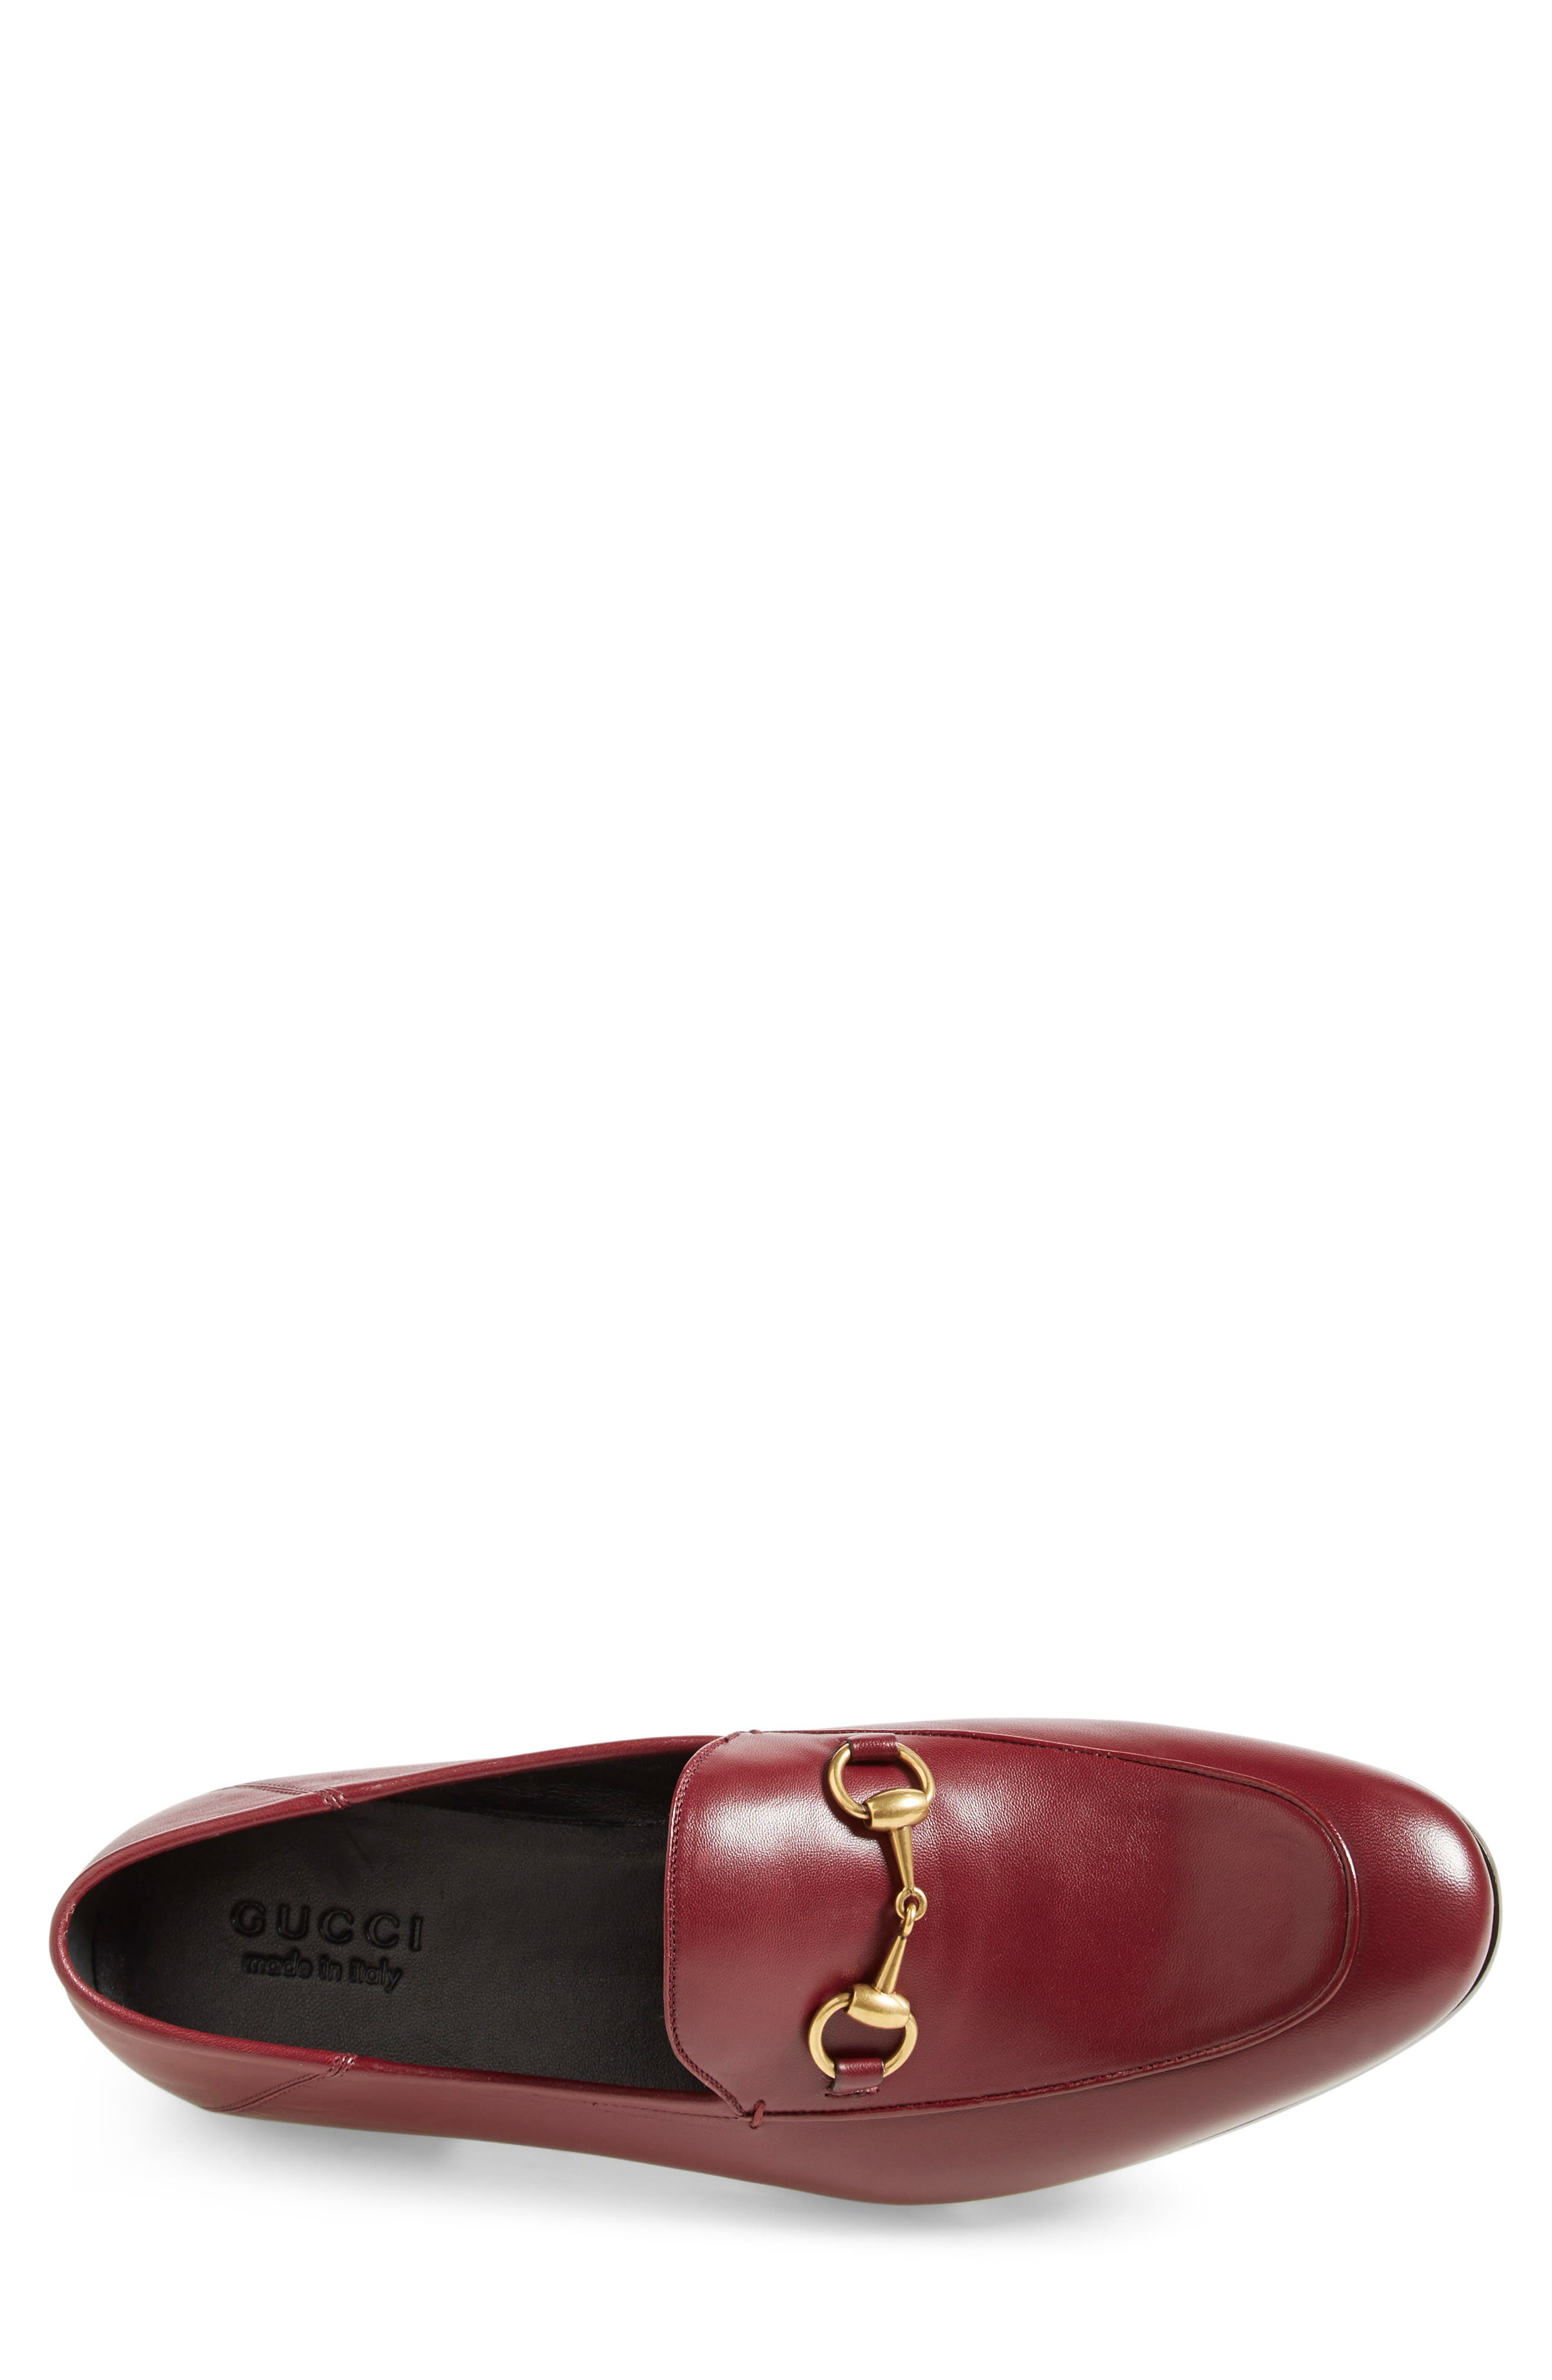 Brixton Leather Loafer,                             Alternate thumbnail 7, color,